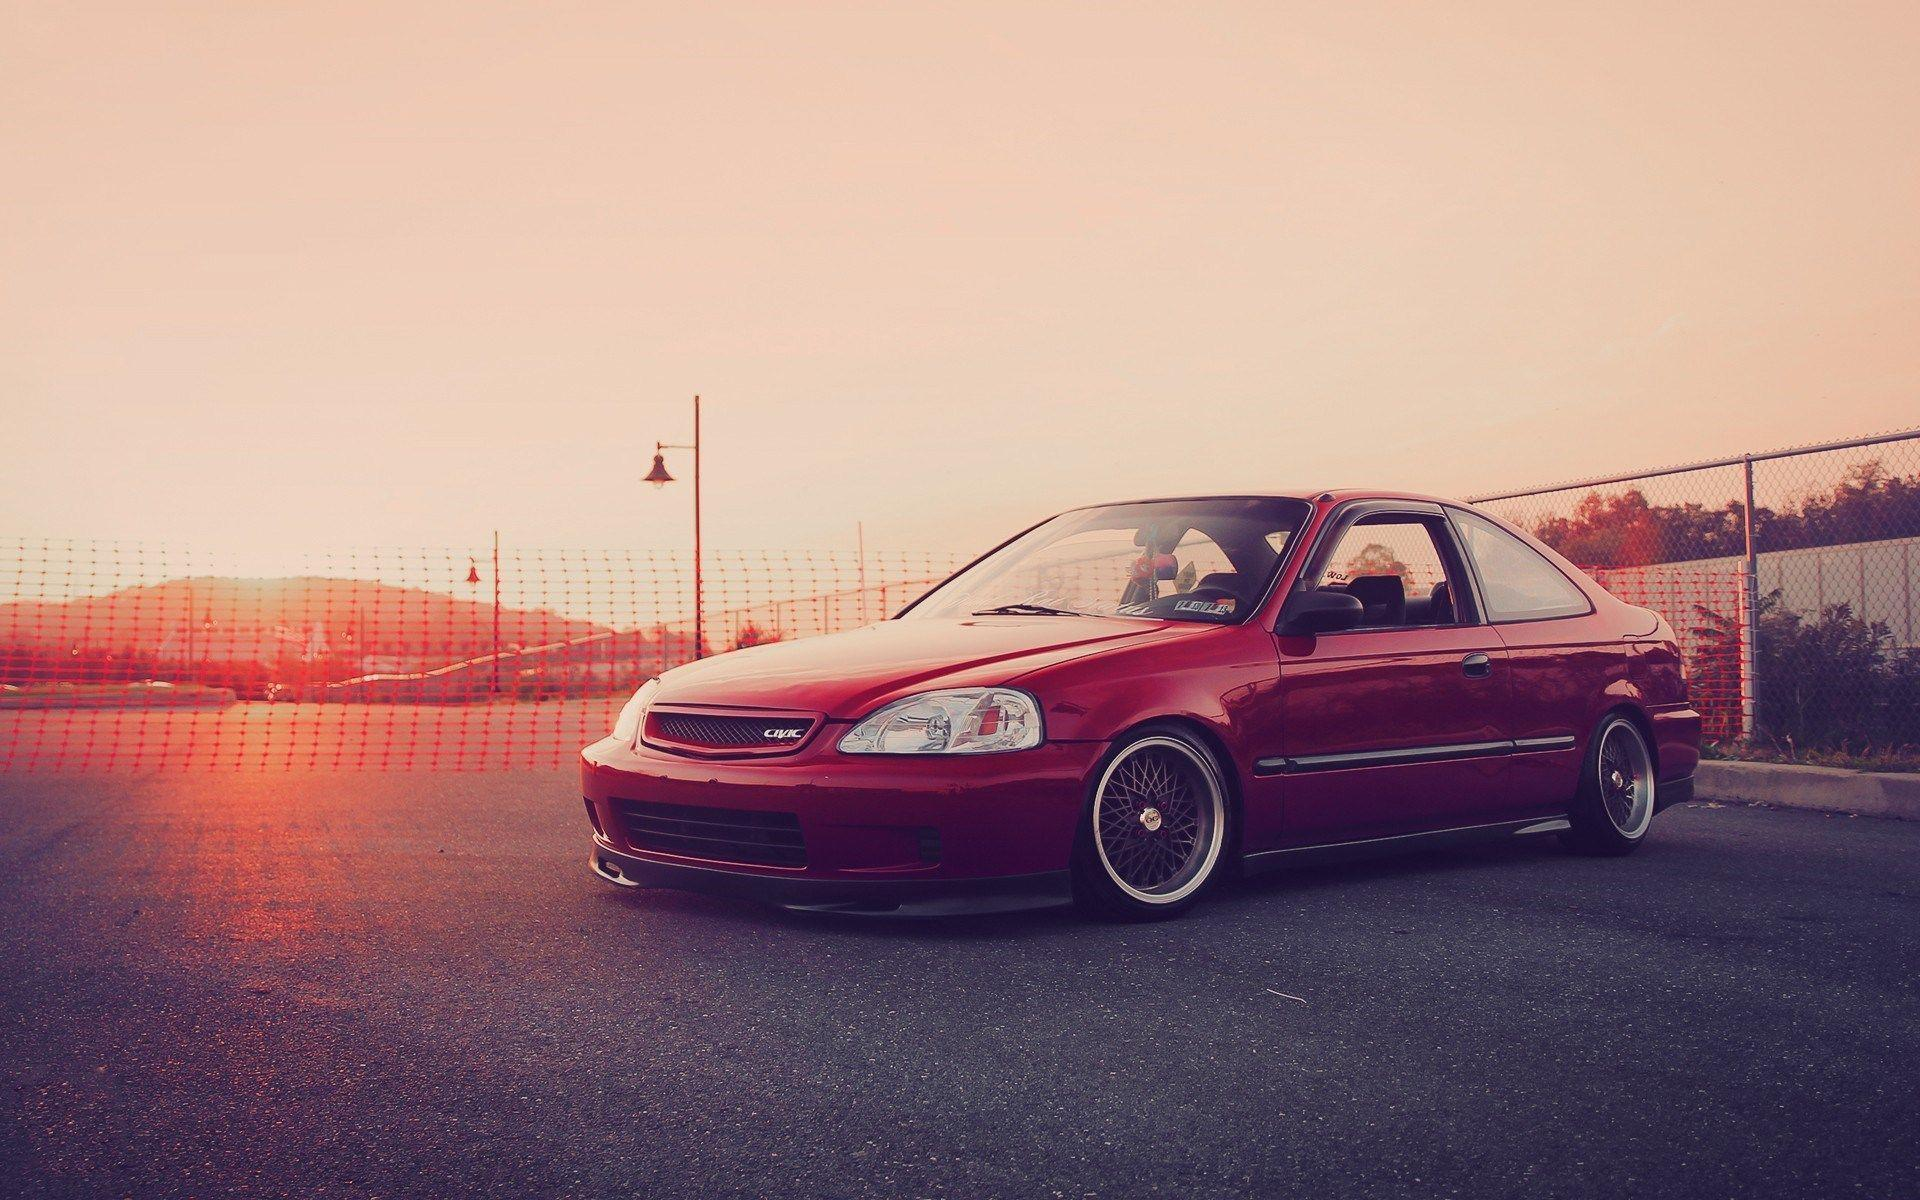 Red Honda Civic Sunset HD Wallpapers